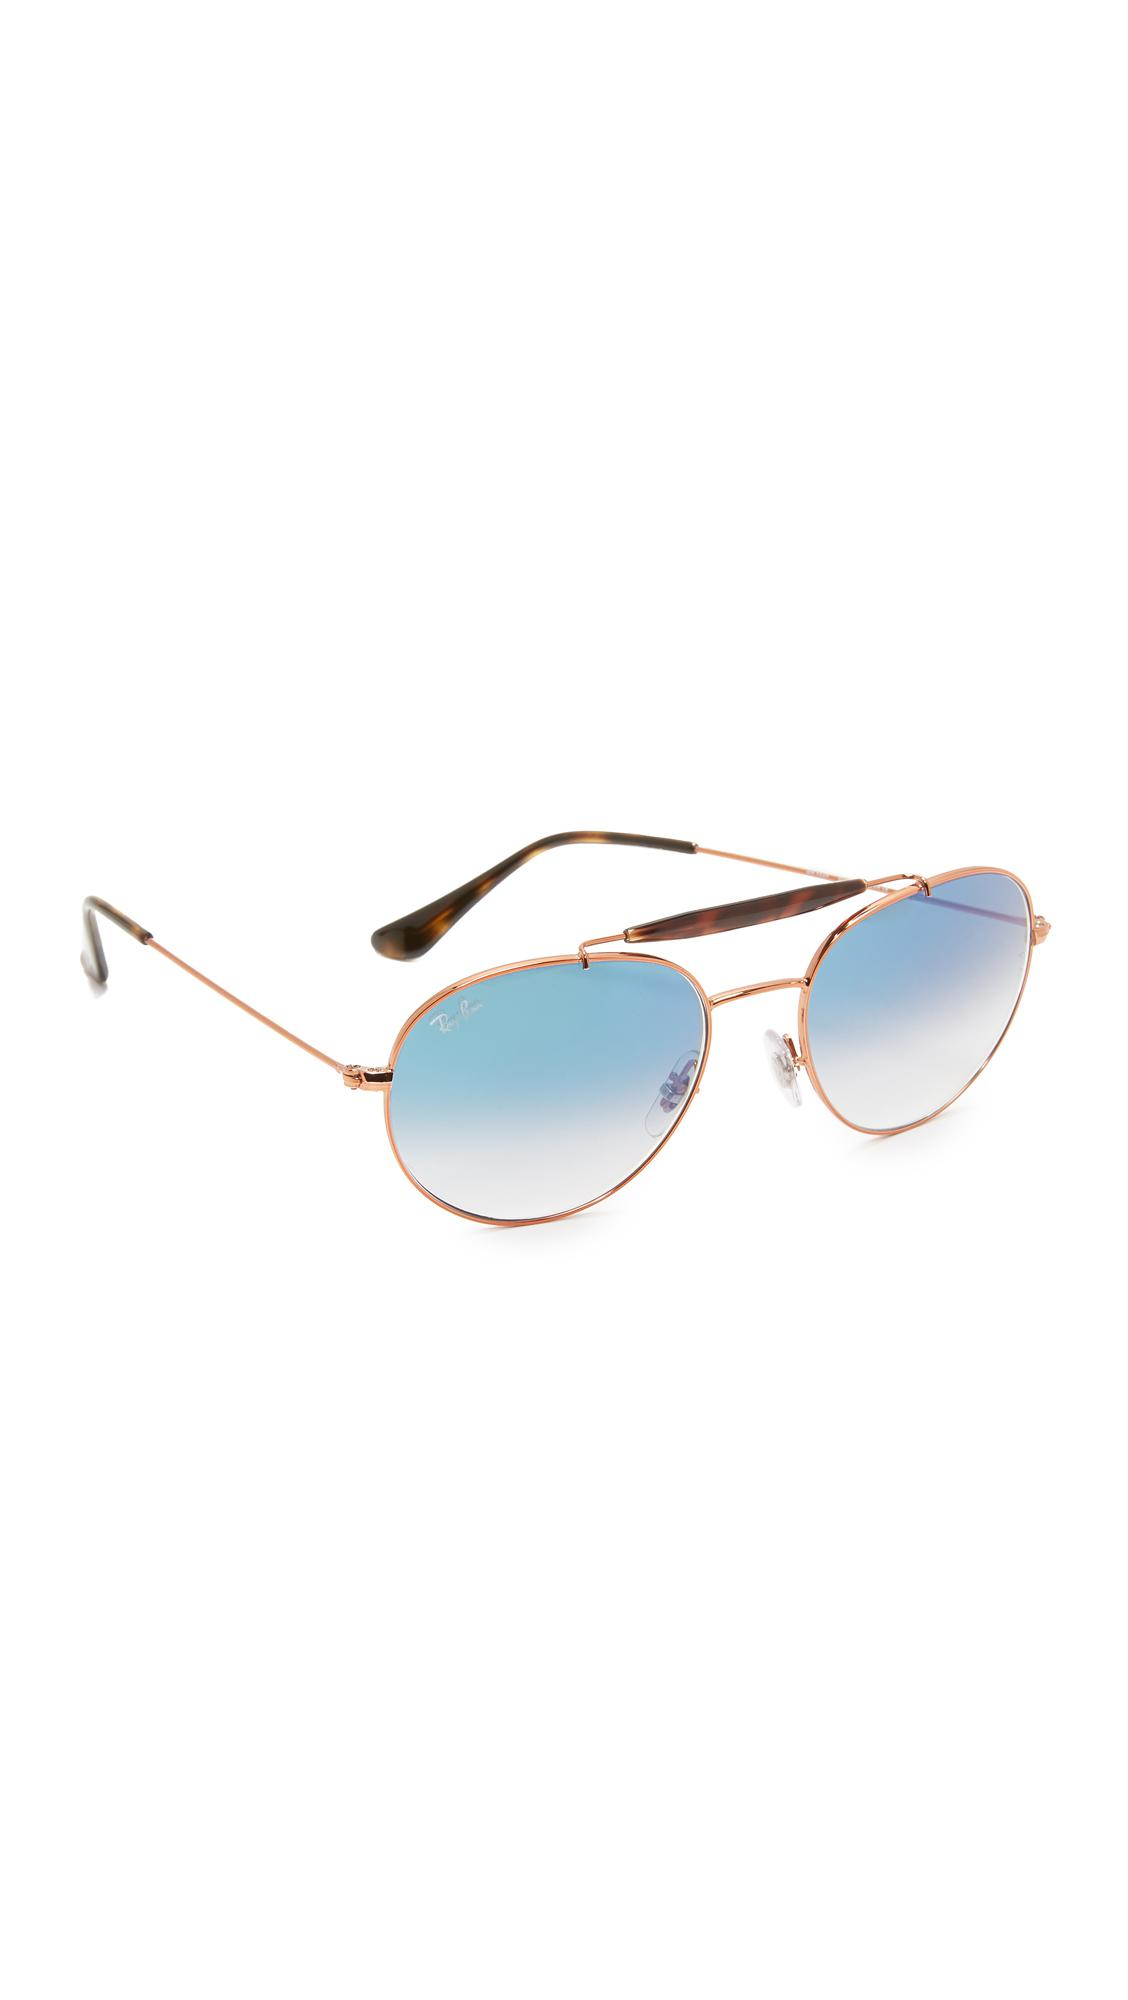 2f58f1fee201a Lyst - Ray-Ban Round Brow Bar Sunglasses in Blue